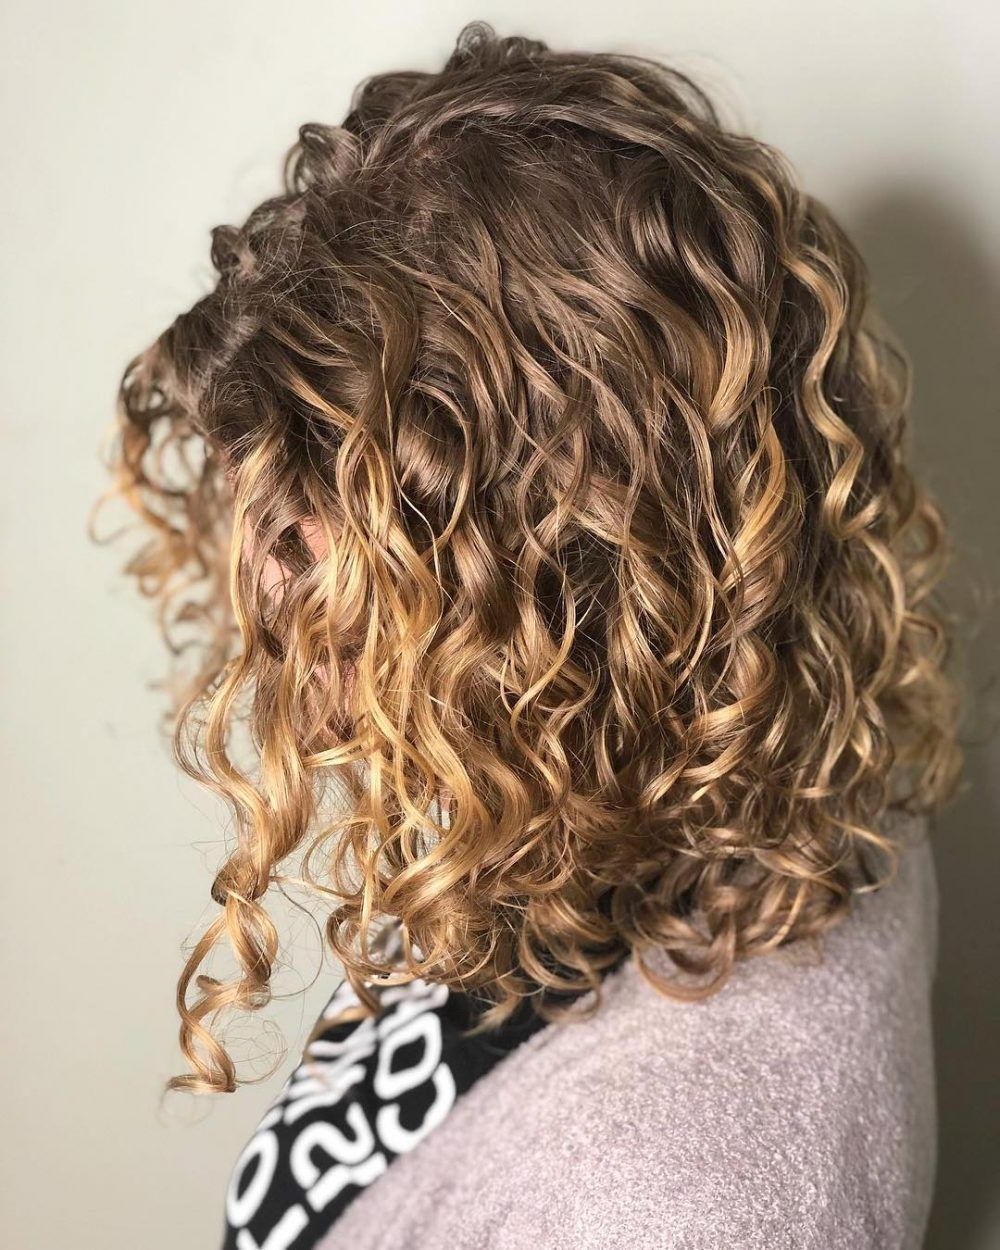 Pin On Shoulder Length Curly Hair 20+ Awesome Medium Curly Hairstyles 2020